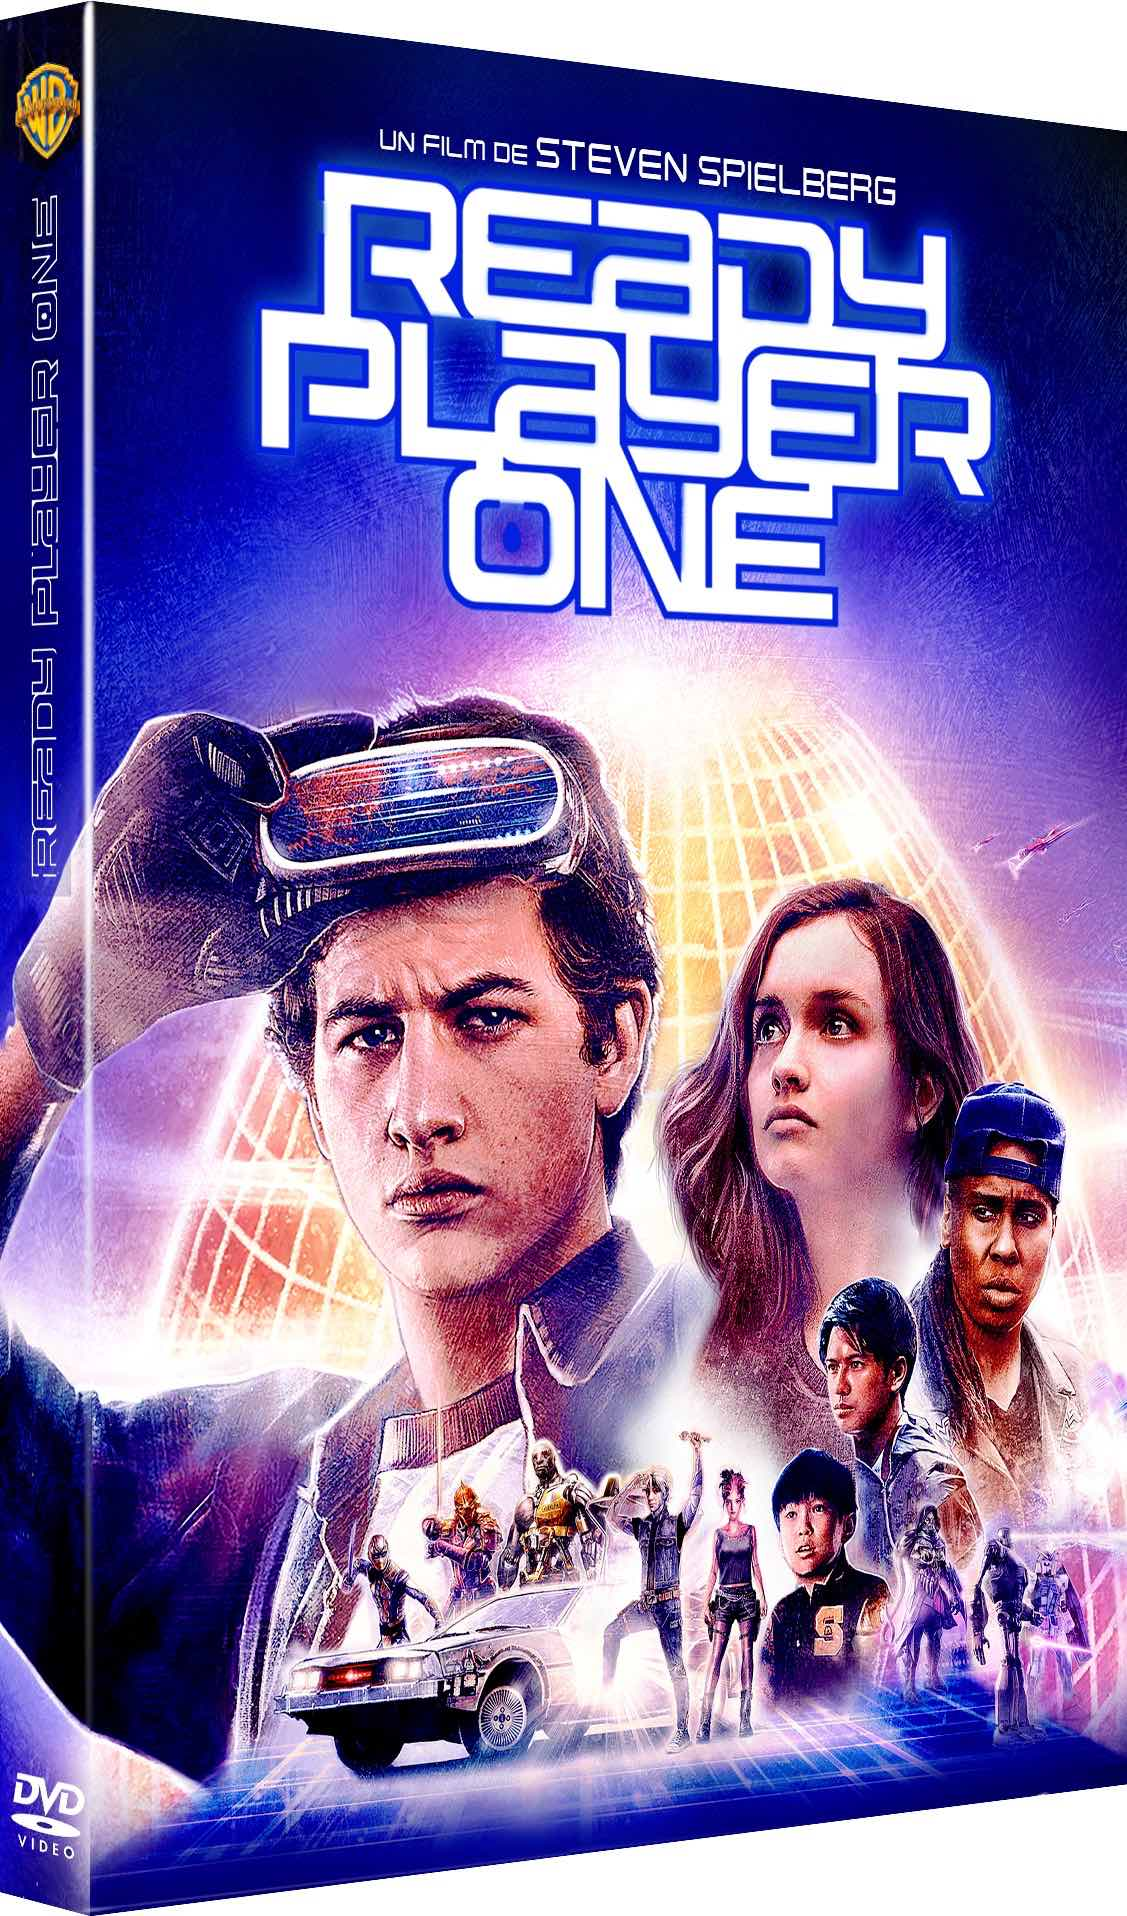 Ready Player One | Spielberg, Steven. Réalisateur